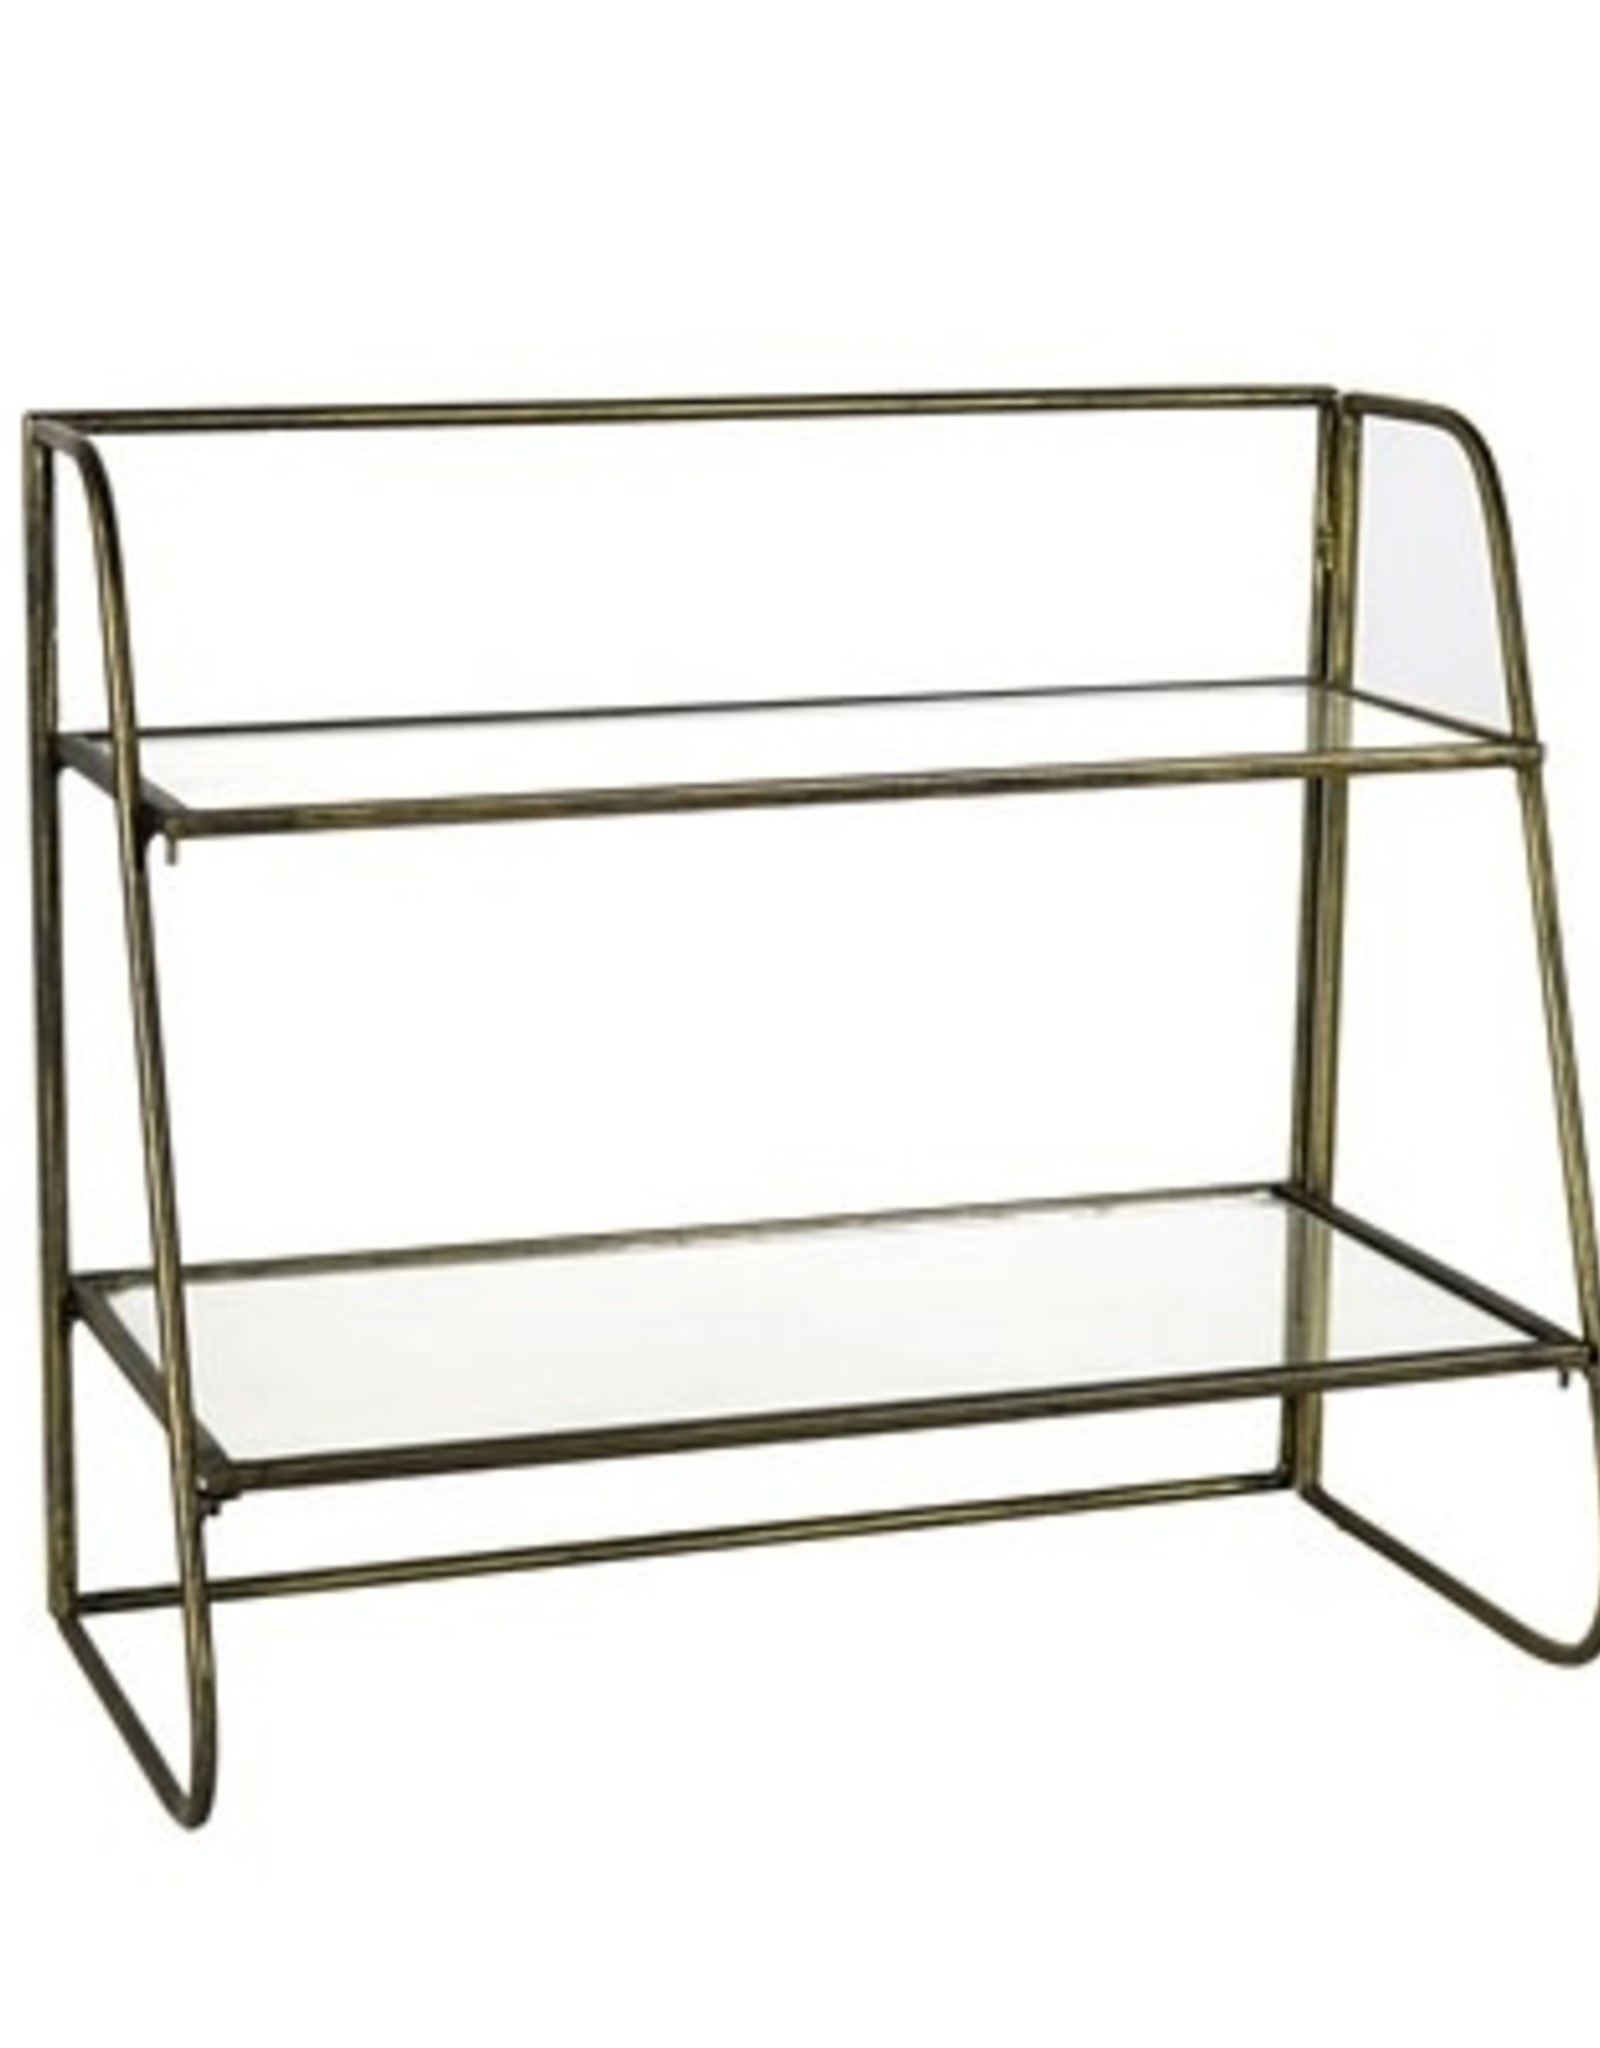 STAND TWO- TIER BRASS WITH GLASS SHELVES